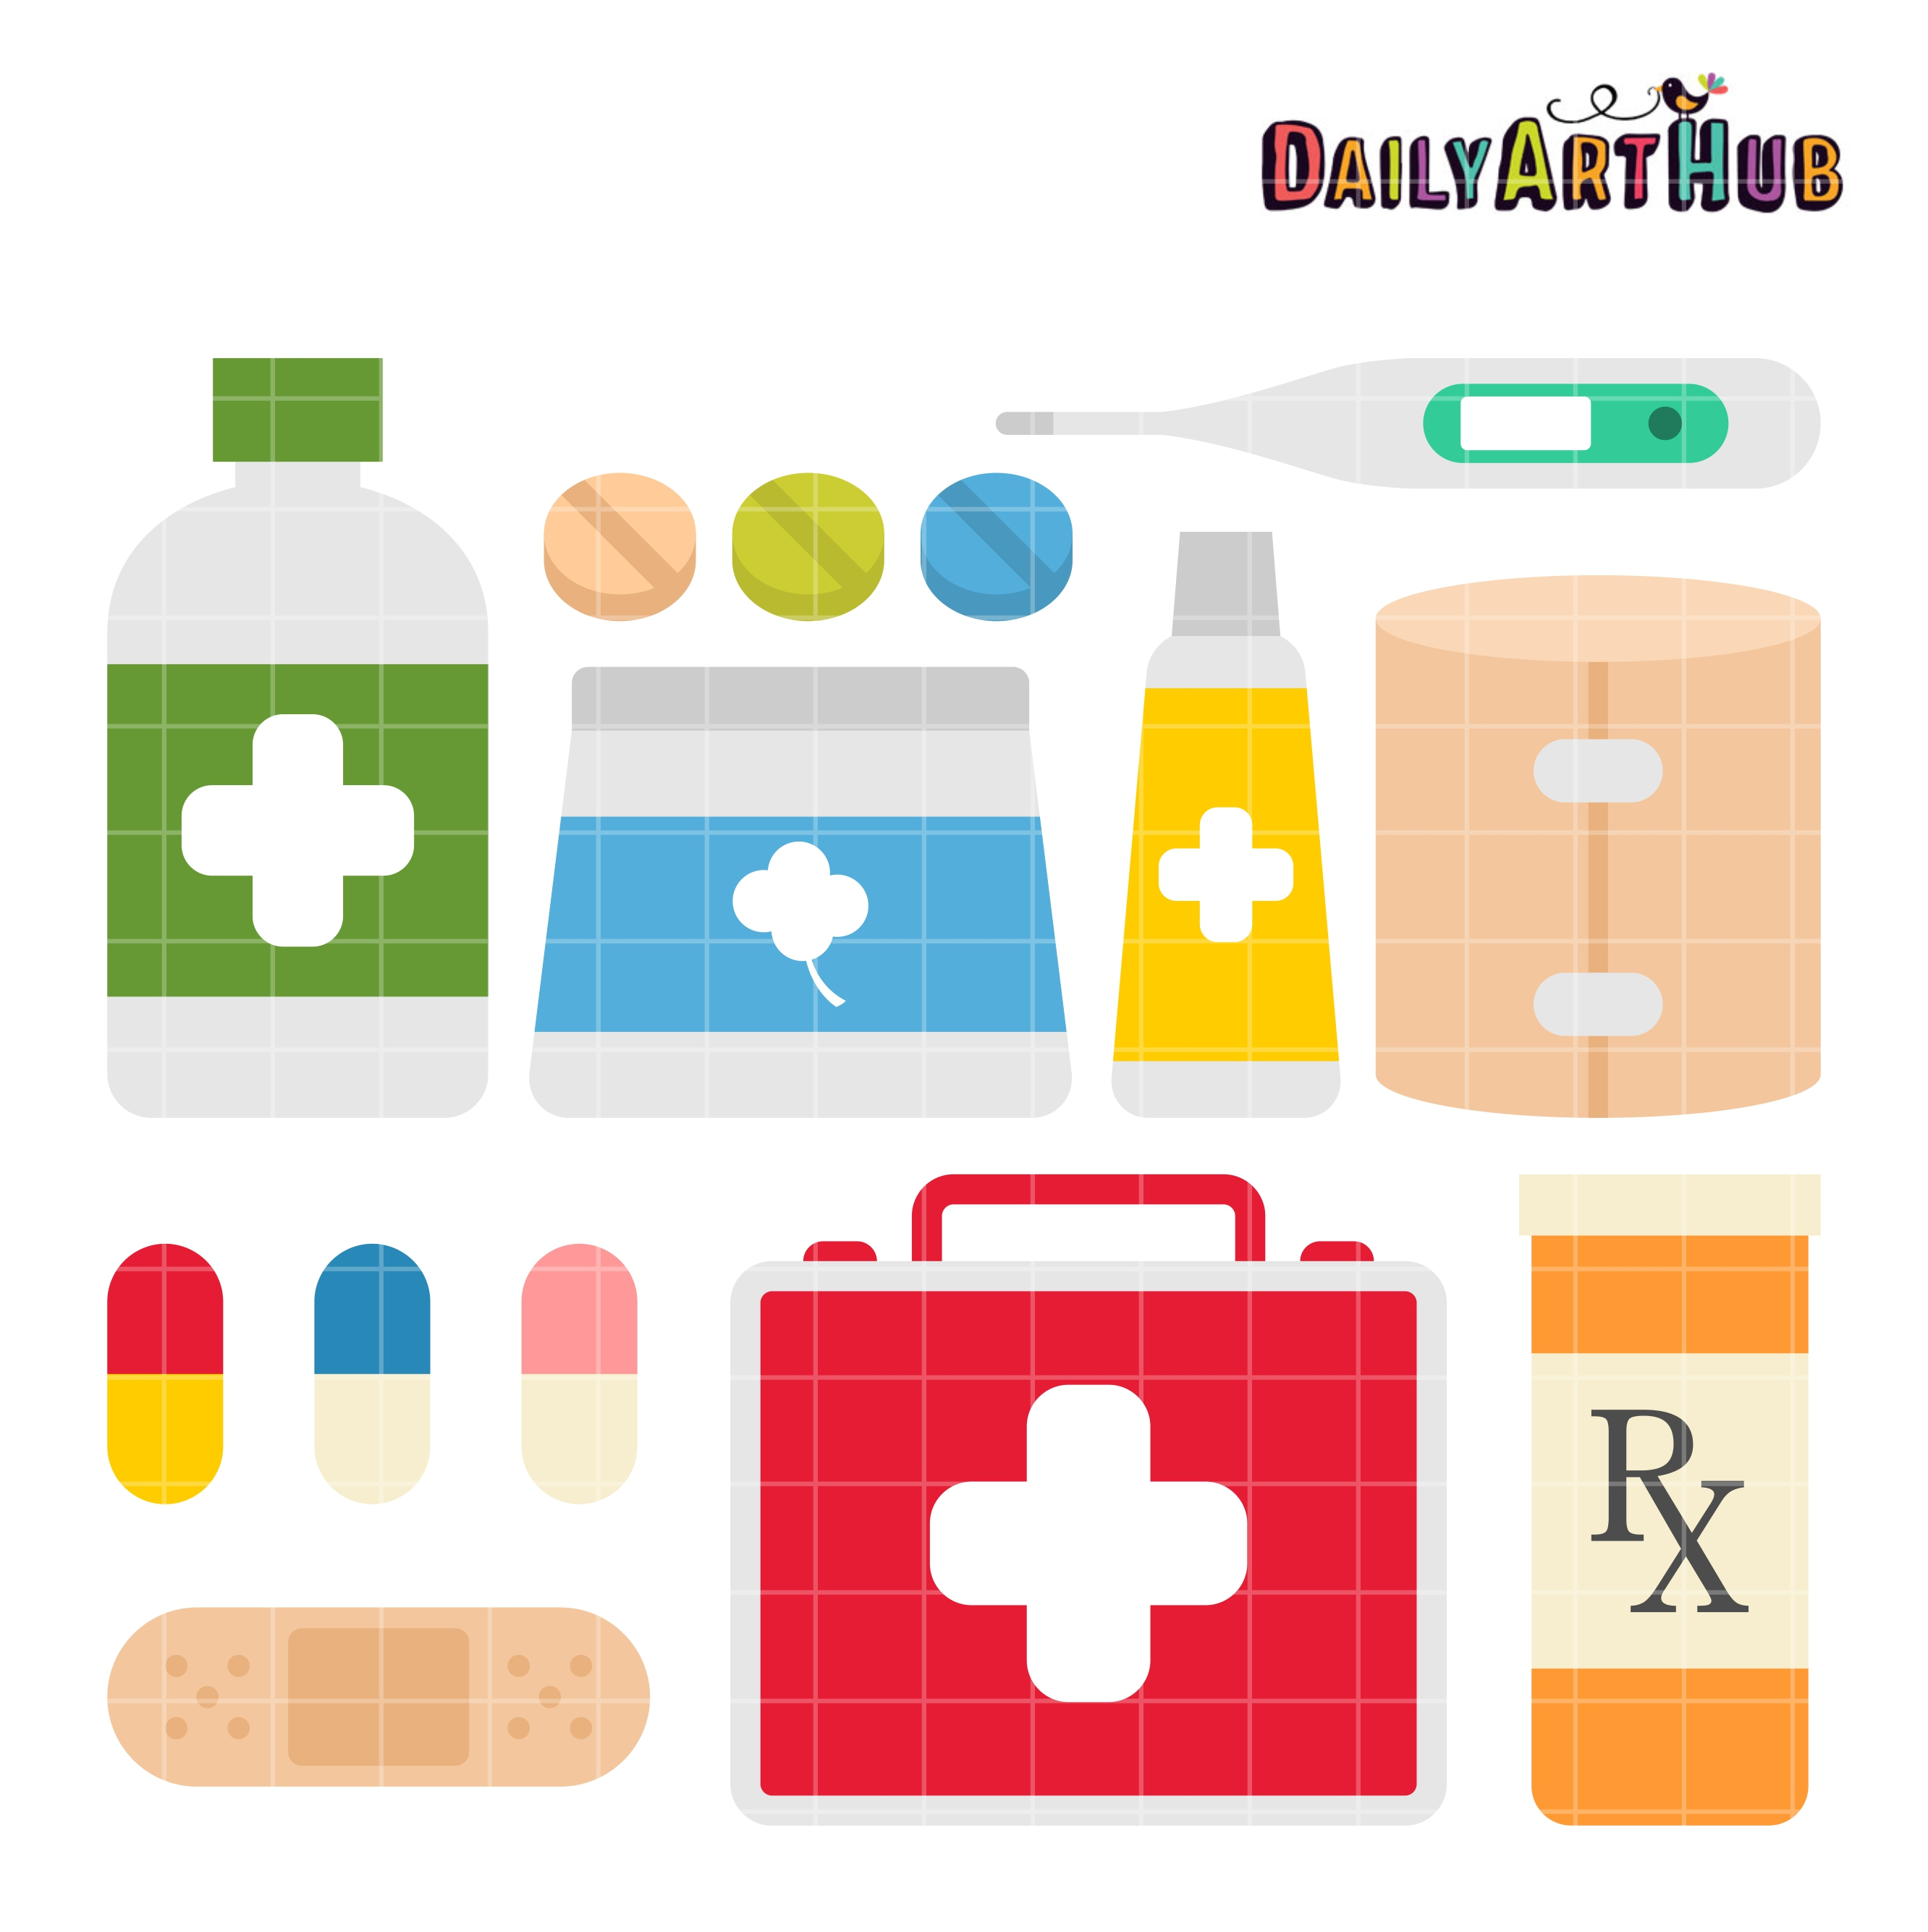 first aid kit clip art set daily art hub free clip art everyday rh dailyarthub com first aid clipart images first aid clipart images